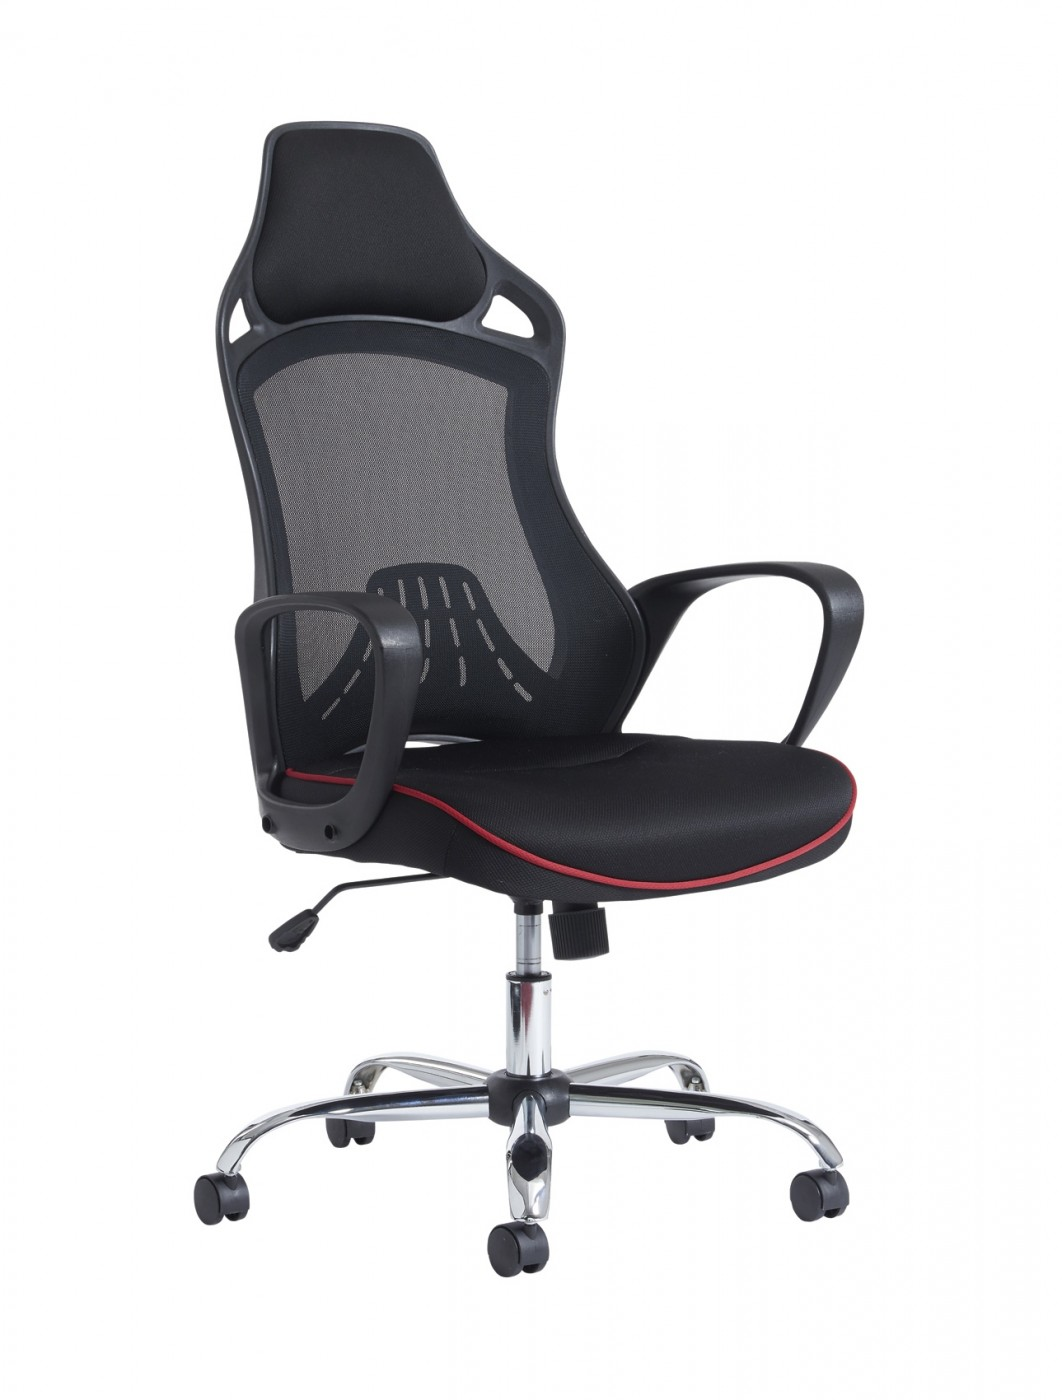 Dams Andretti High Mesh Back Office Chair AND300T1KR